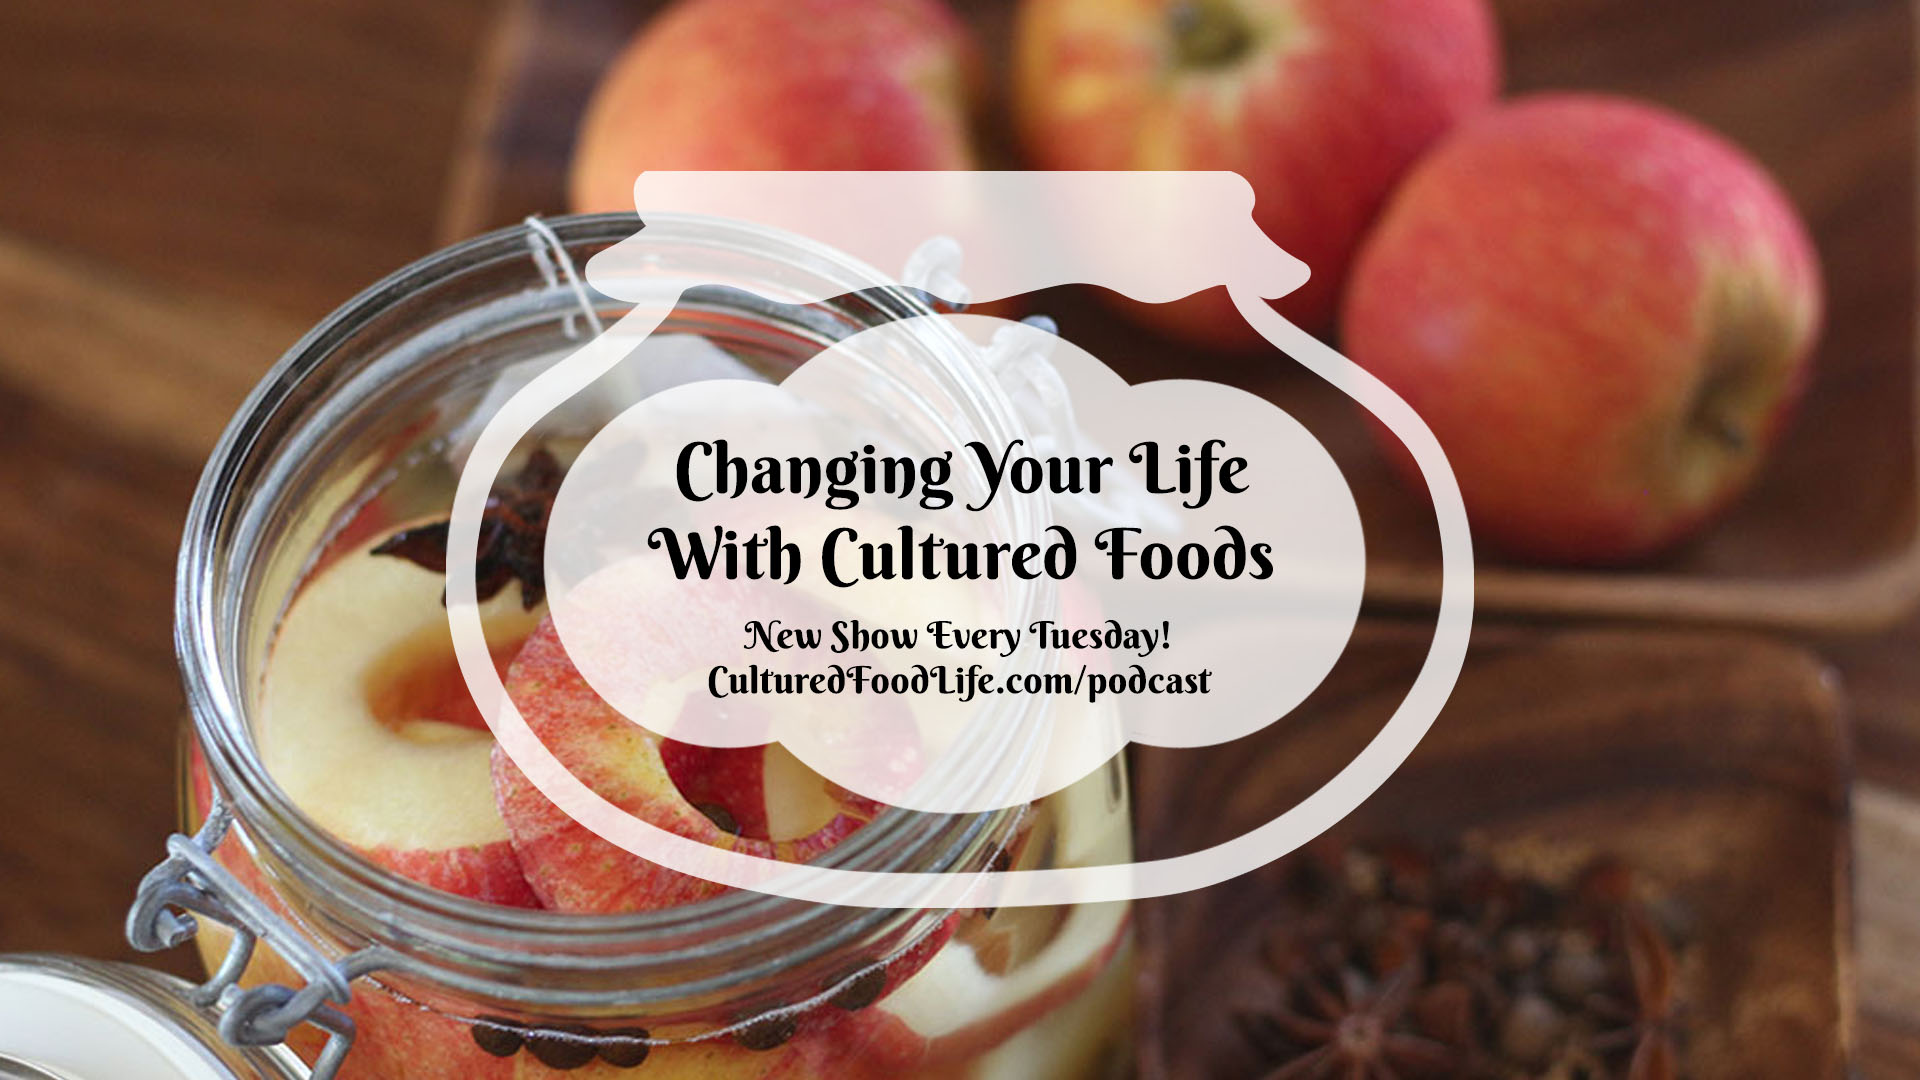 Changing Your Life With Cultured Foods Full